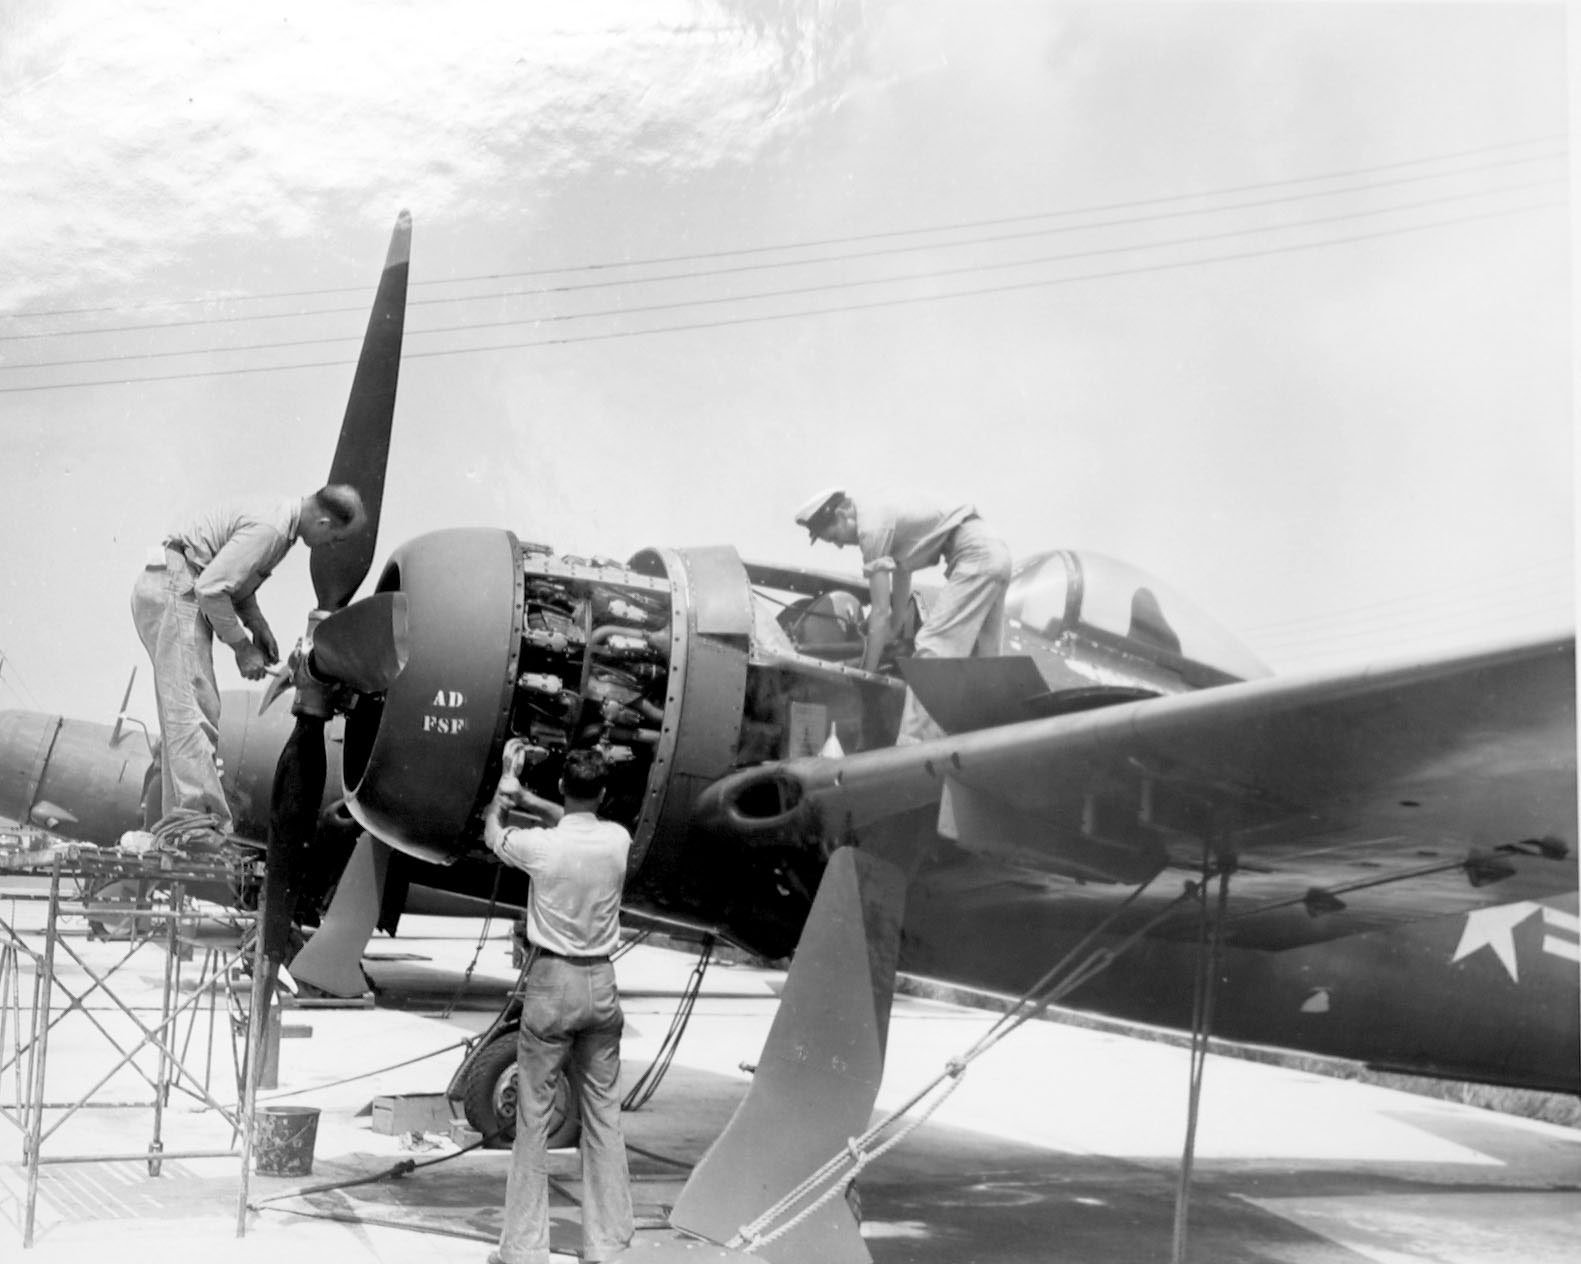 Old image of mechanics working on a single engine aircraft at the Memphis MIllington Airport